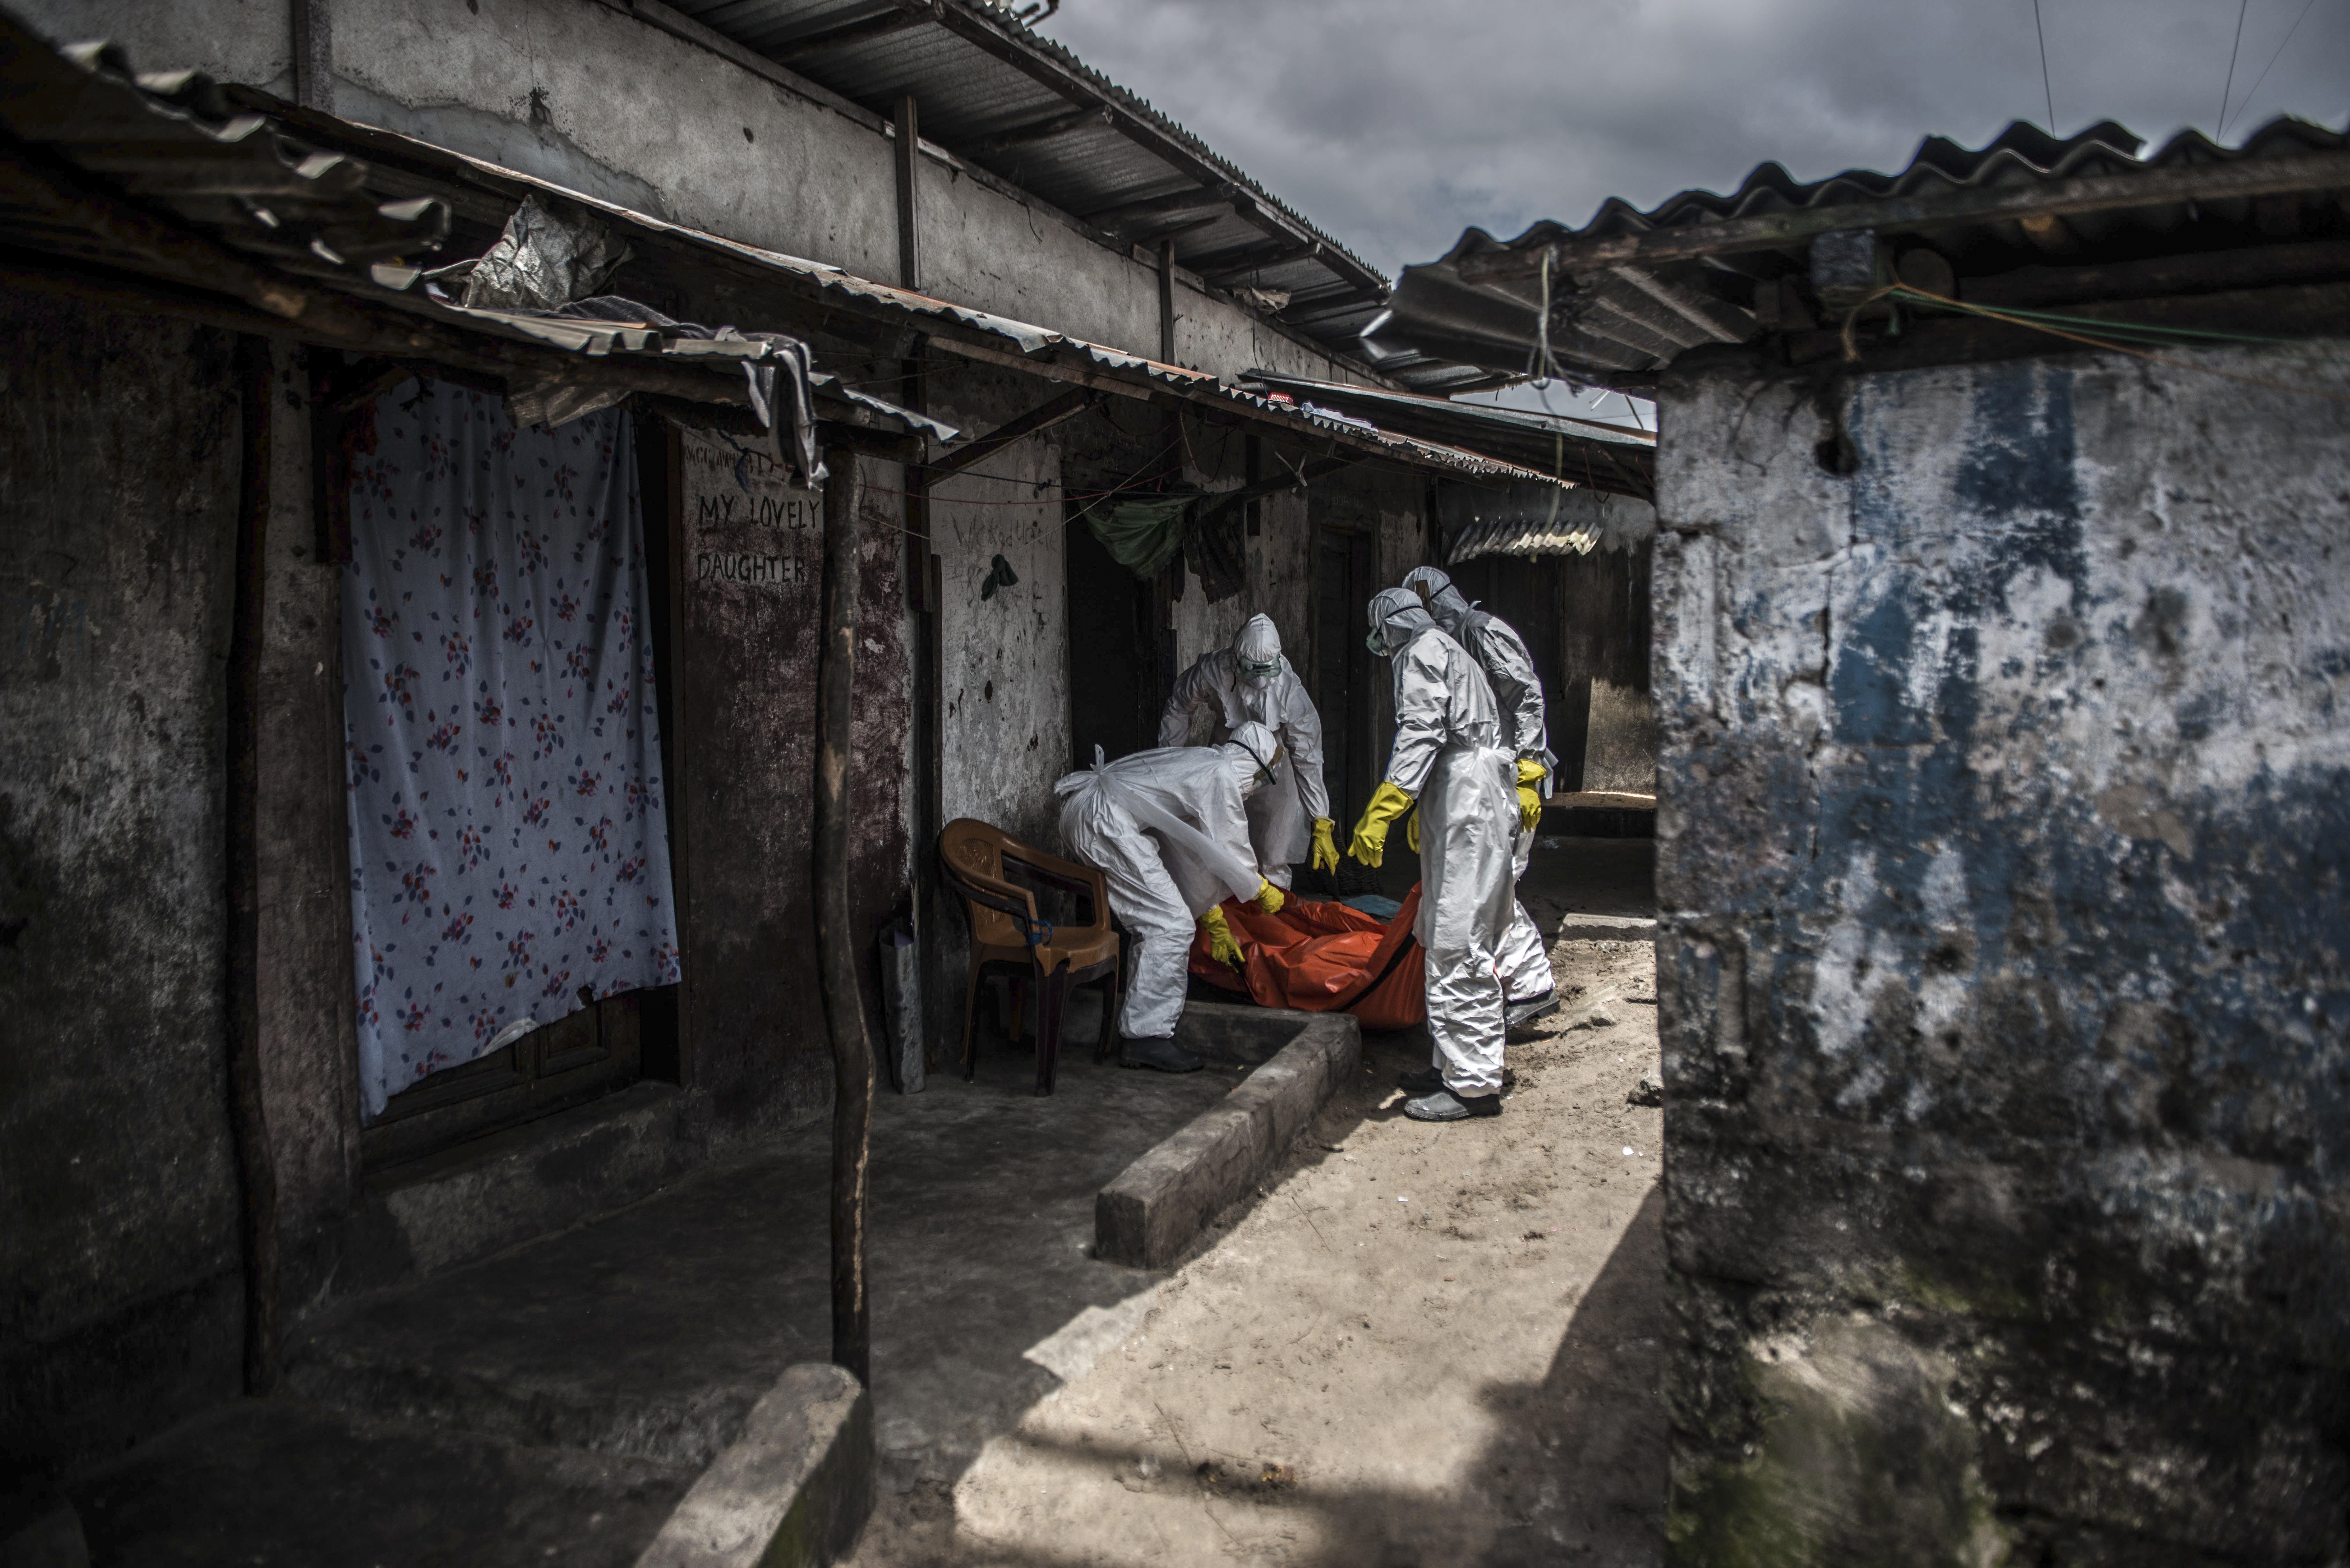 MONROVIA, LIBERIA - OCTOBER 15: Red Cross members carry dead body of Mambodou Aliyu (35) died due to the Ebola virus,, in Monrovia, Liberia on 15 October, 2014. (Photo by Mohammed Elshamy/Anadolu Agency/Getty Images)